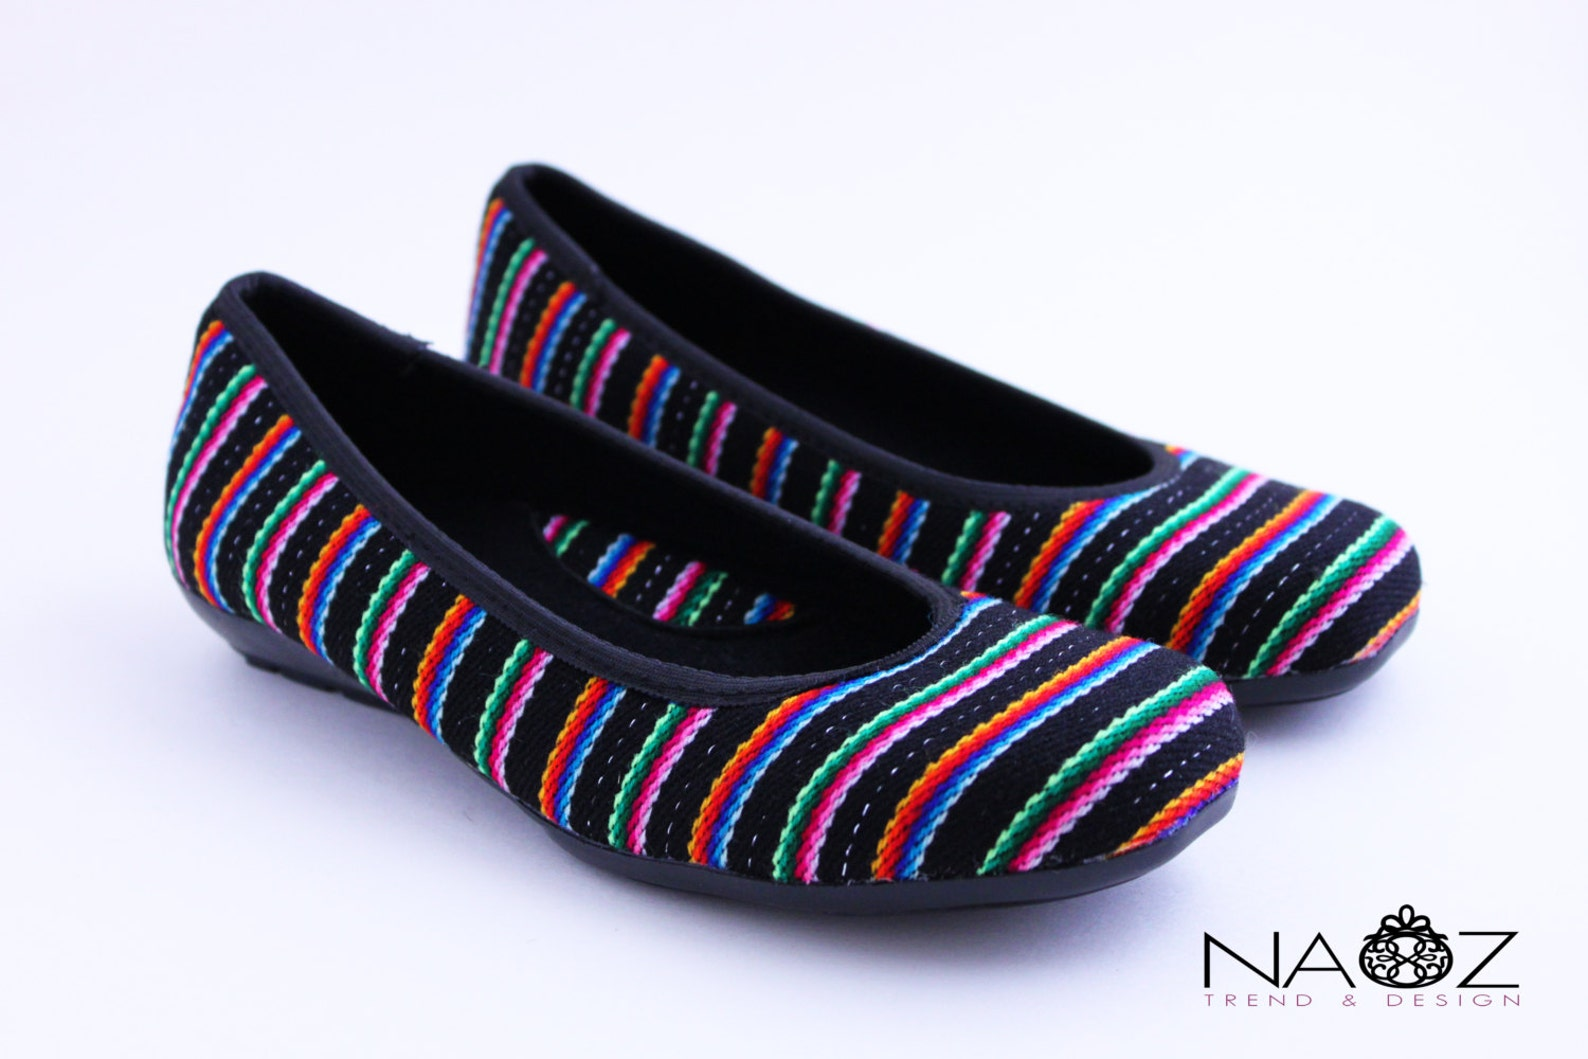 size 5 boho chic flats / ballet flats shoes. the last one!